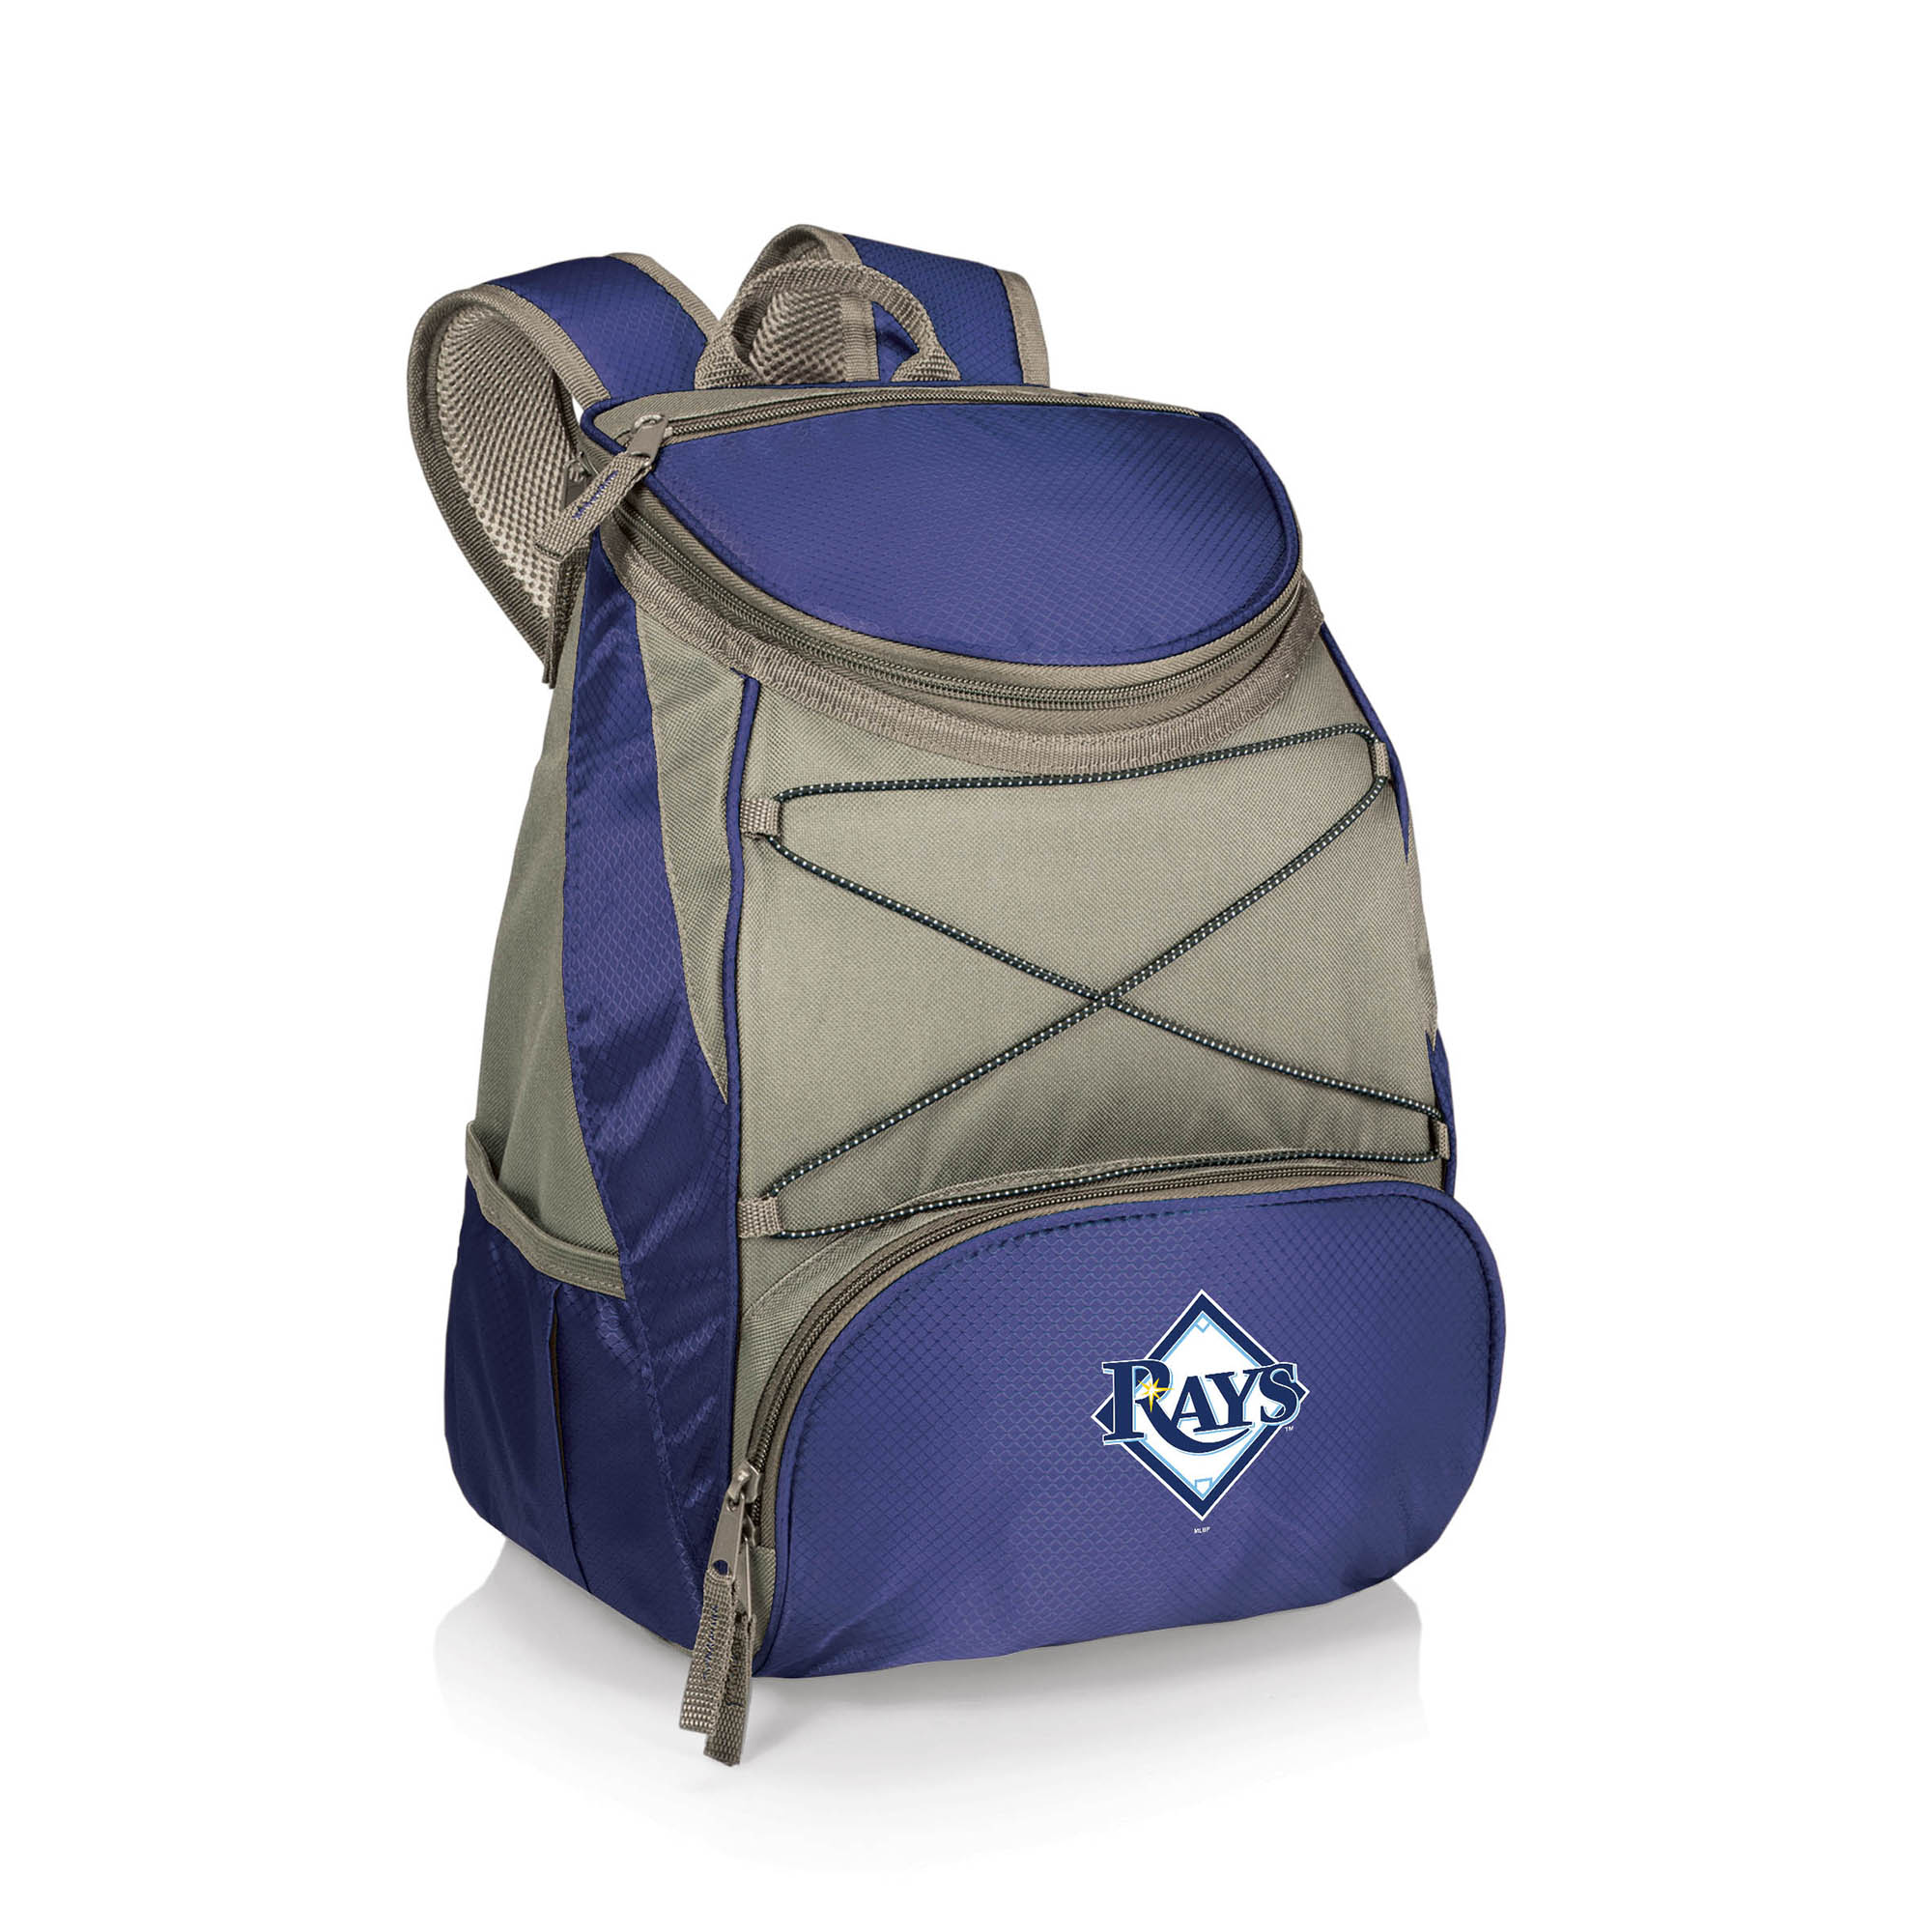 Tampa Bay Rays PTX Backpack Cooler - Navy - No Size